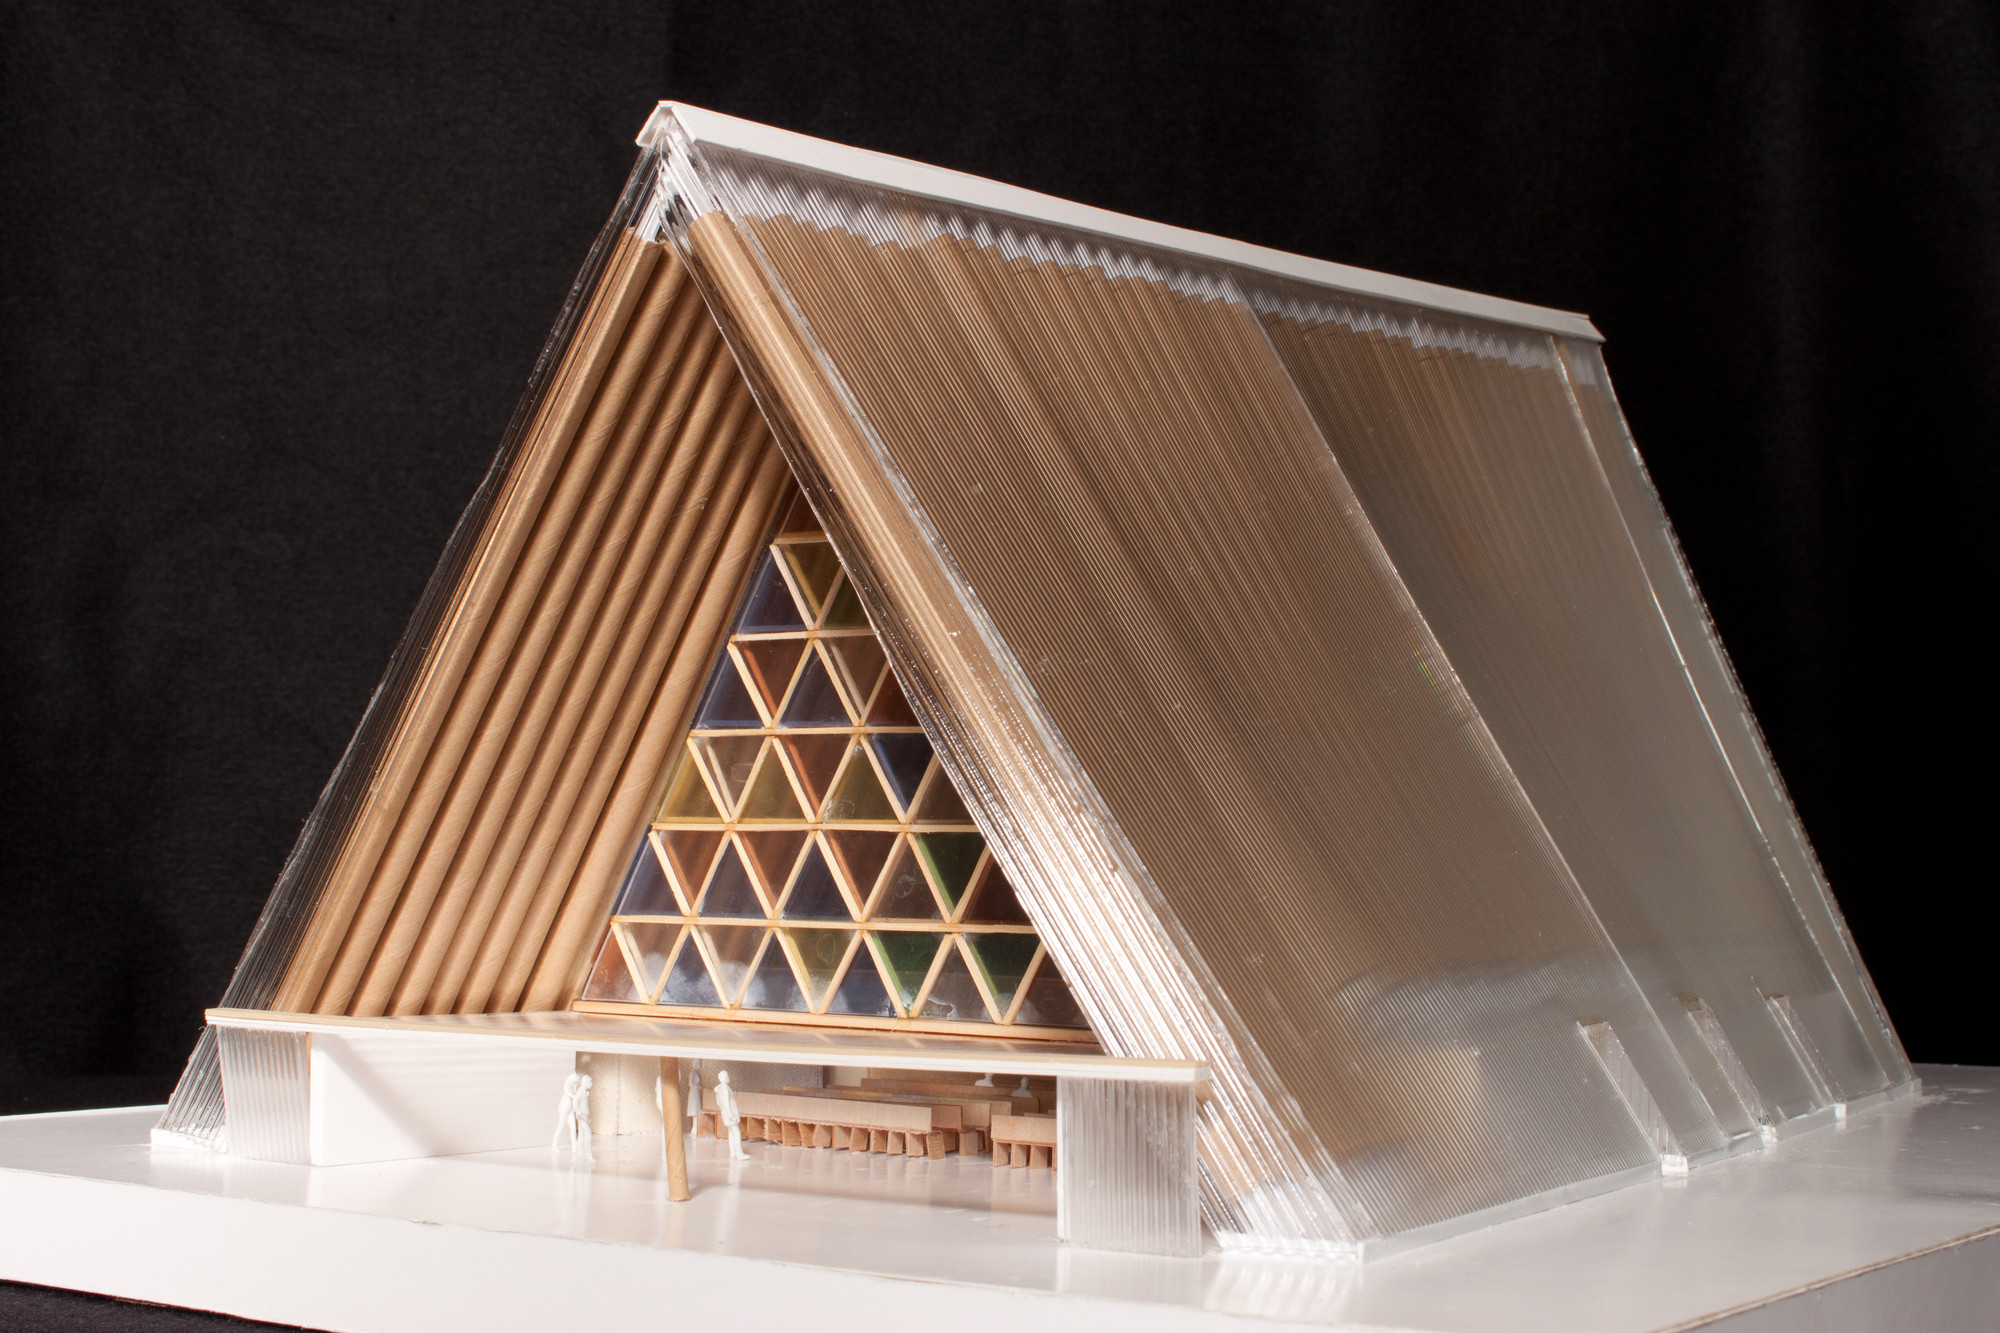 Courtesy of Shigeru Ban Architects